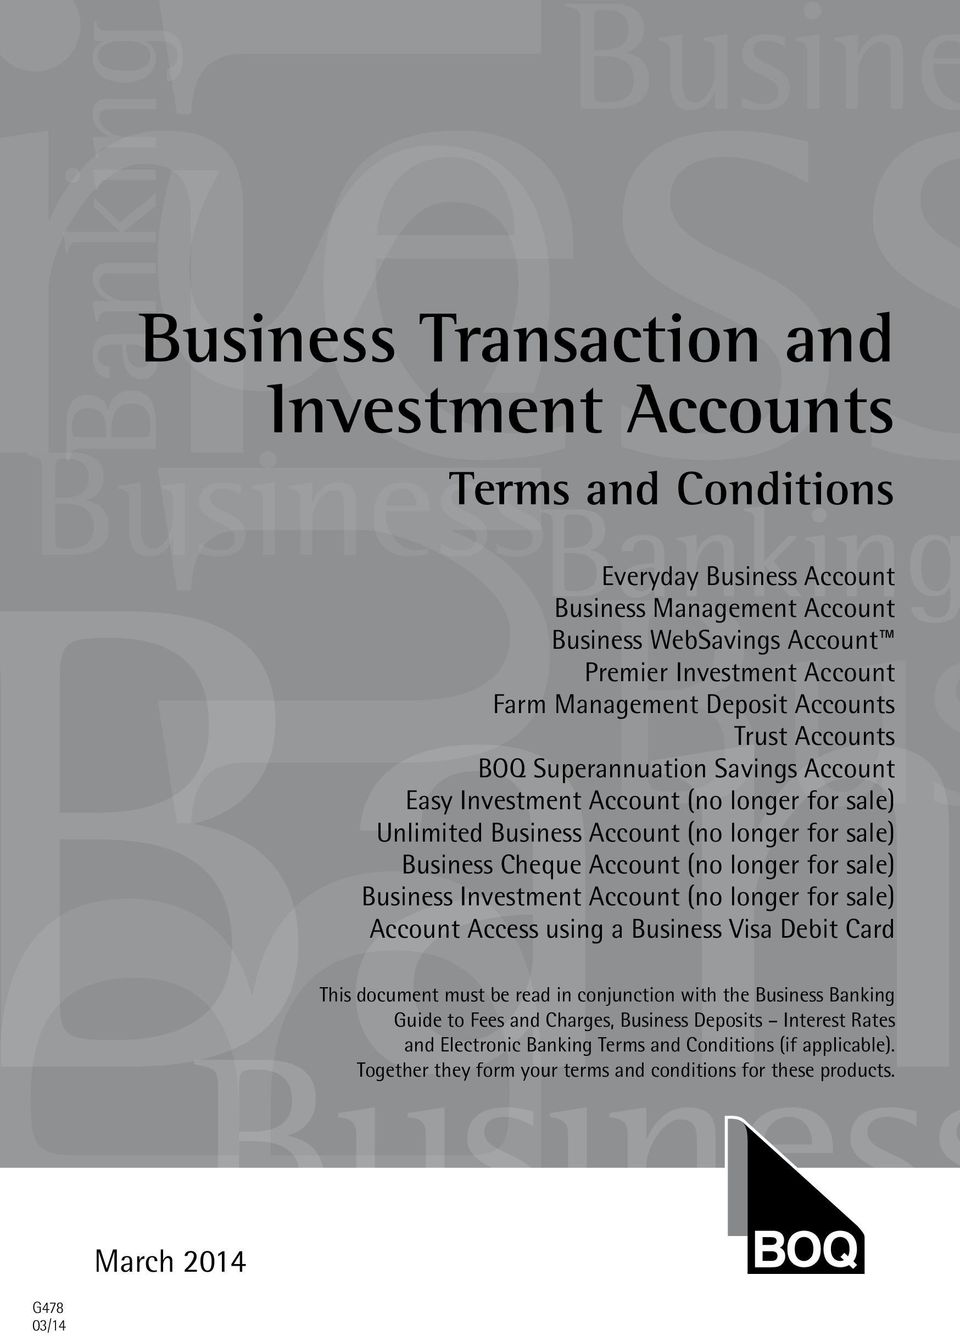 longer for sale) Business Investment Account (no longer for sale) Account Access using a Business Visa Debit Card This document must be read in conjunction with the Business Banking Guide to